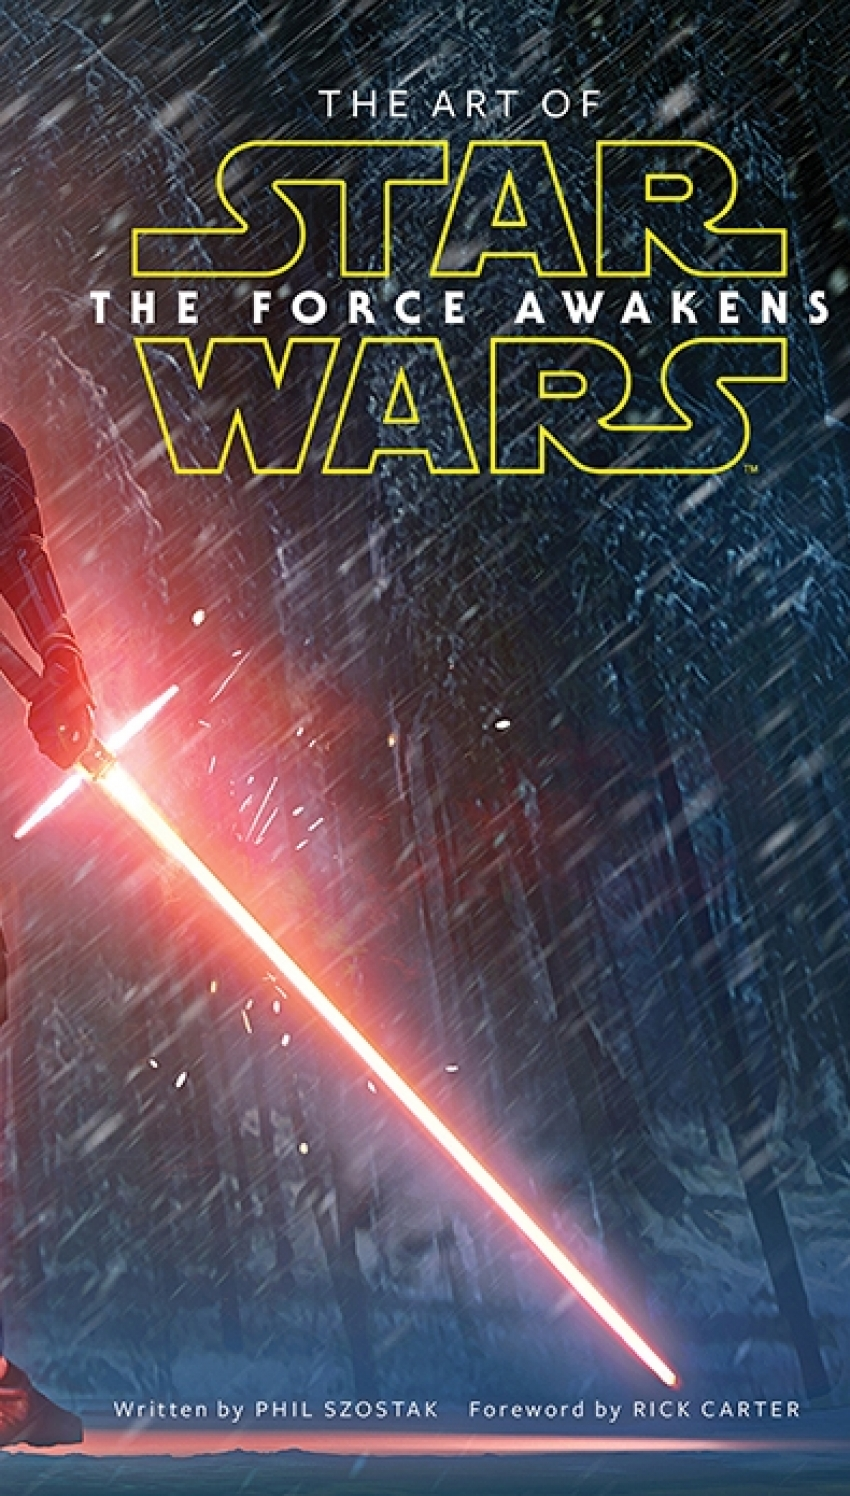 Annunciato The Art of Star Wars: The Force Awakens!